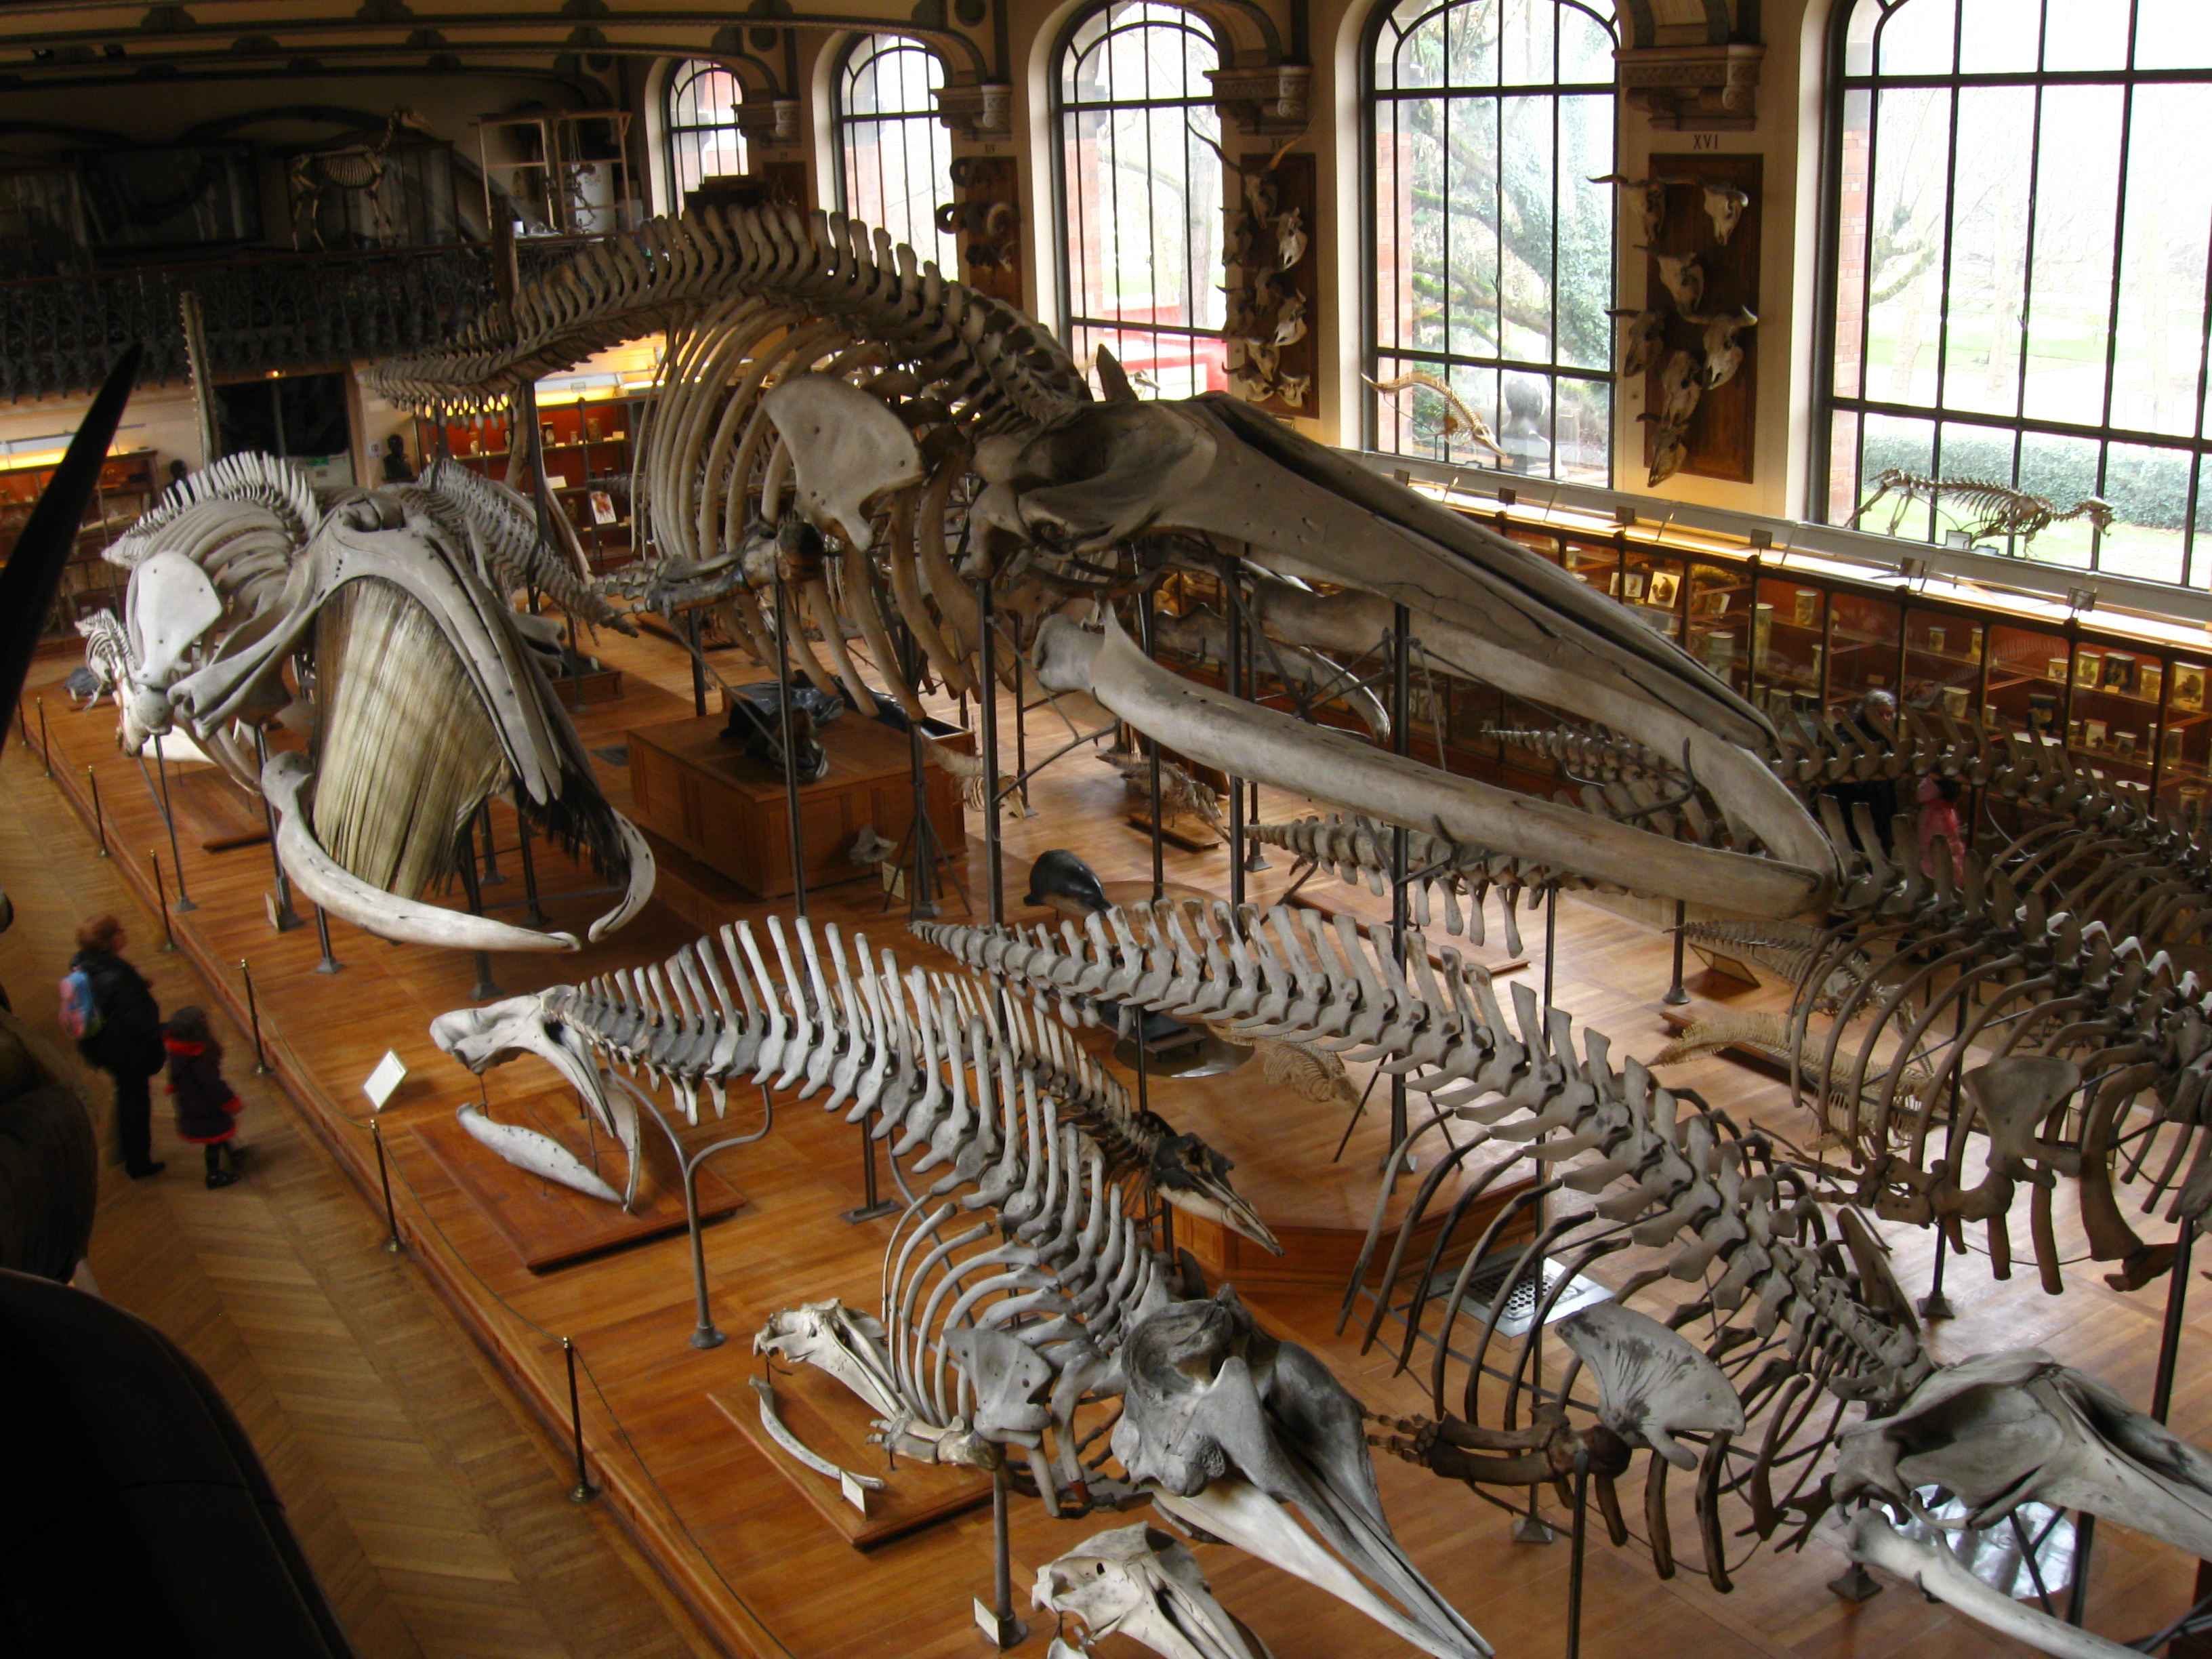 Palais Galliera, Musée de la Mode Paris, The Natural History Museum | CheckYourParis